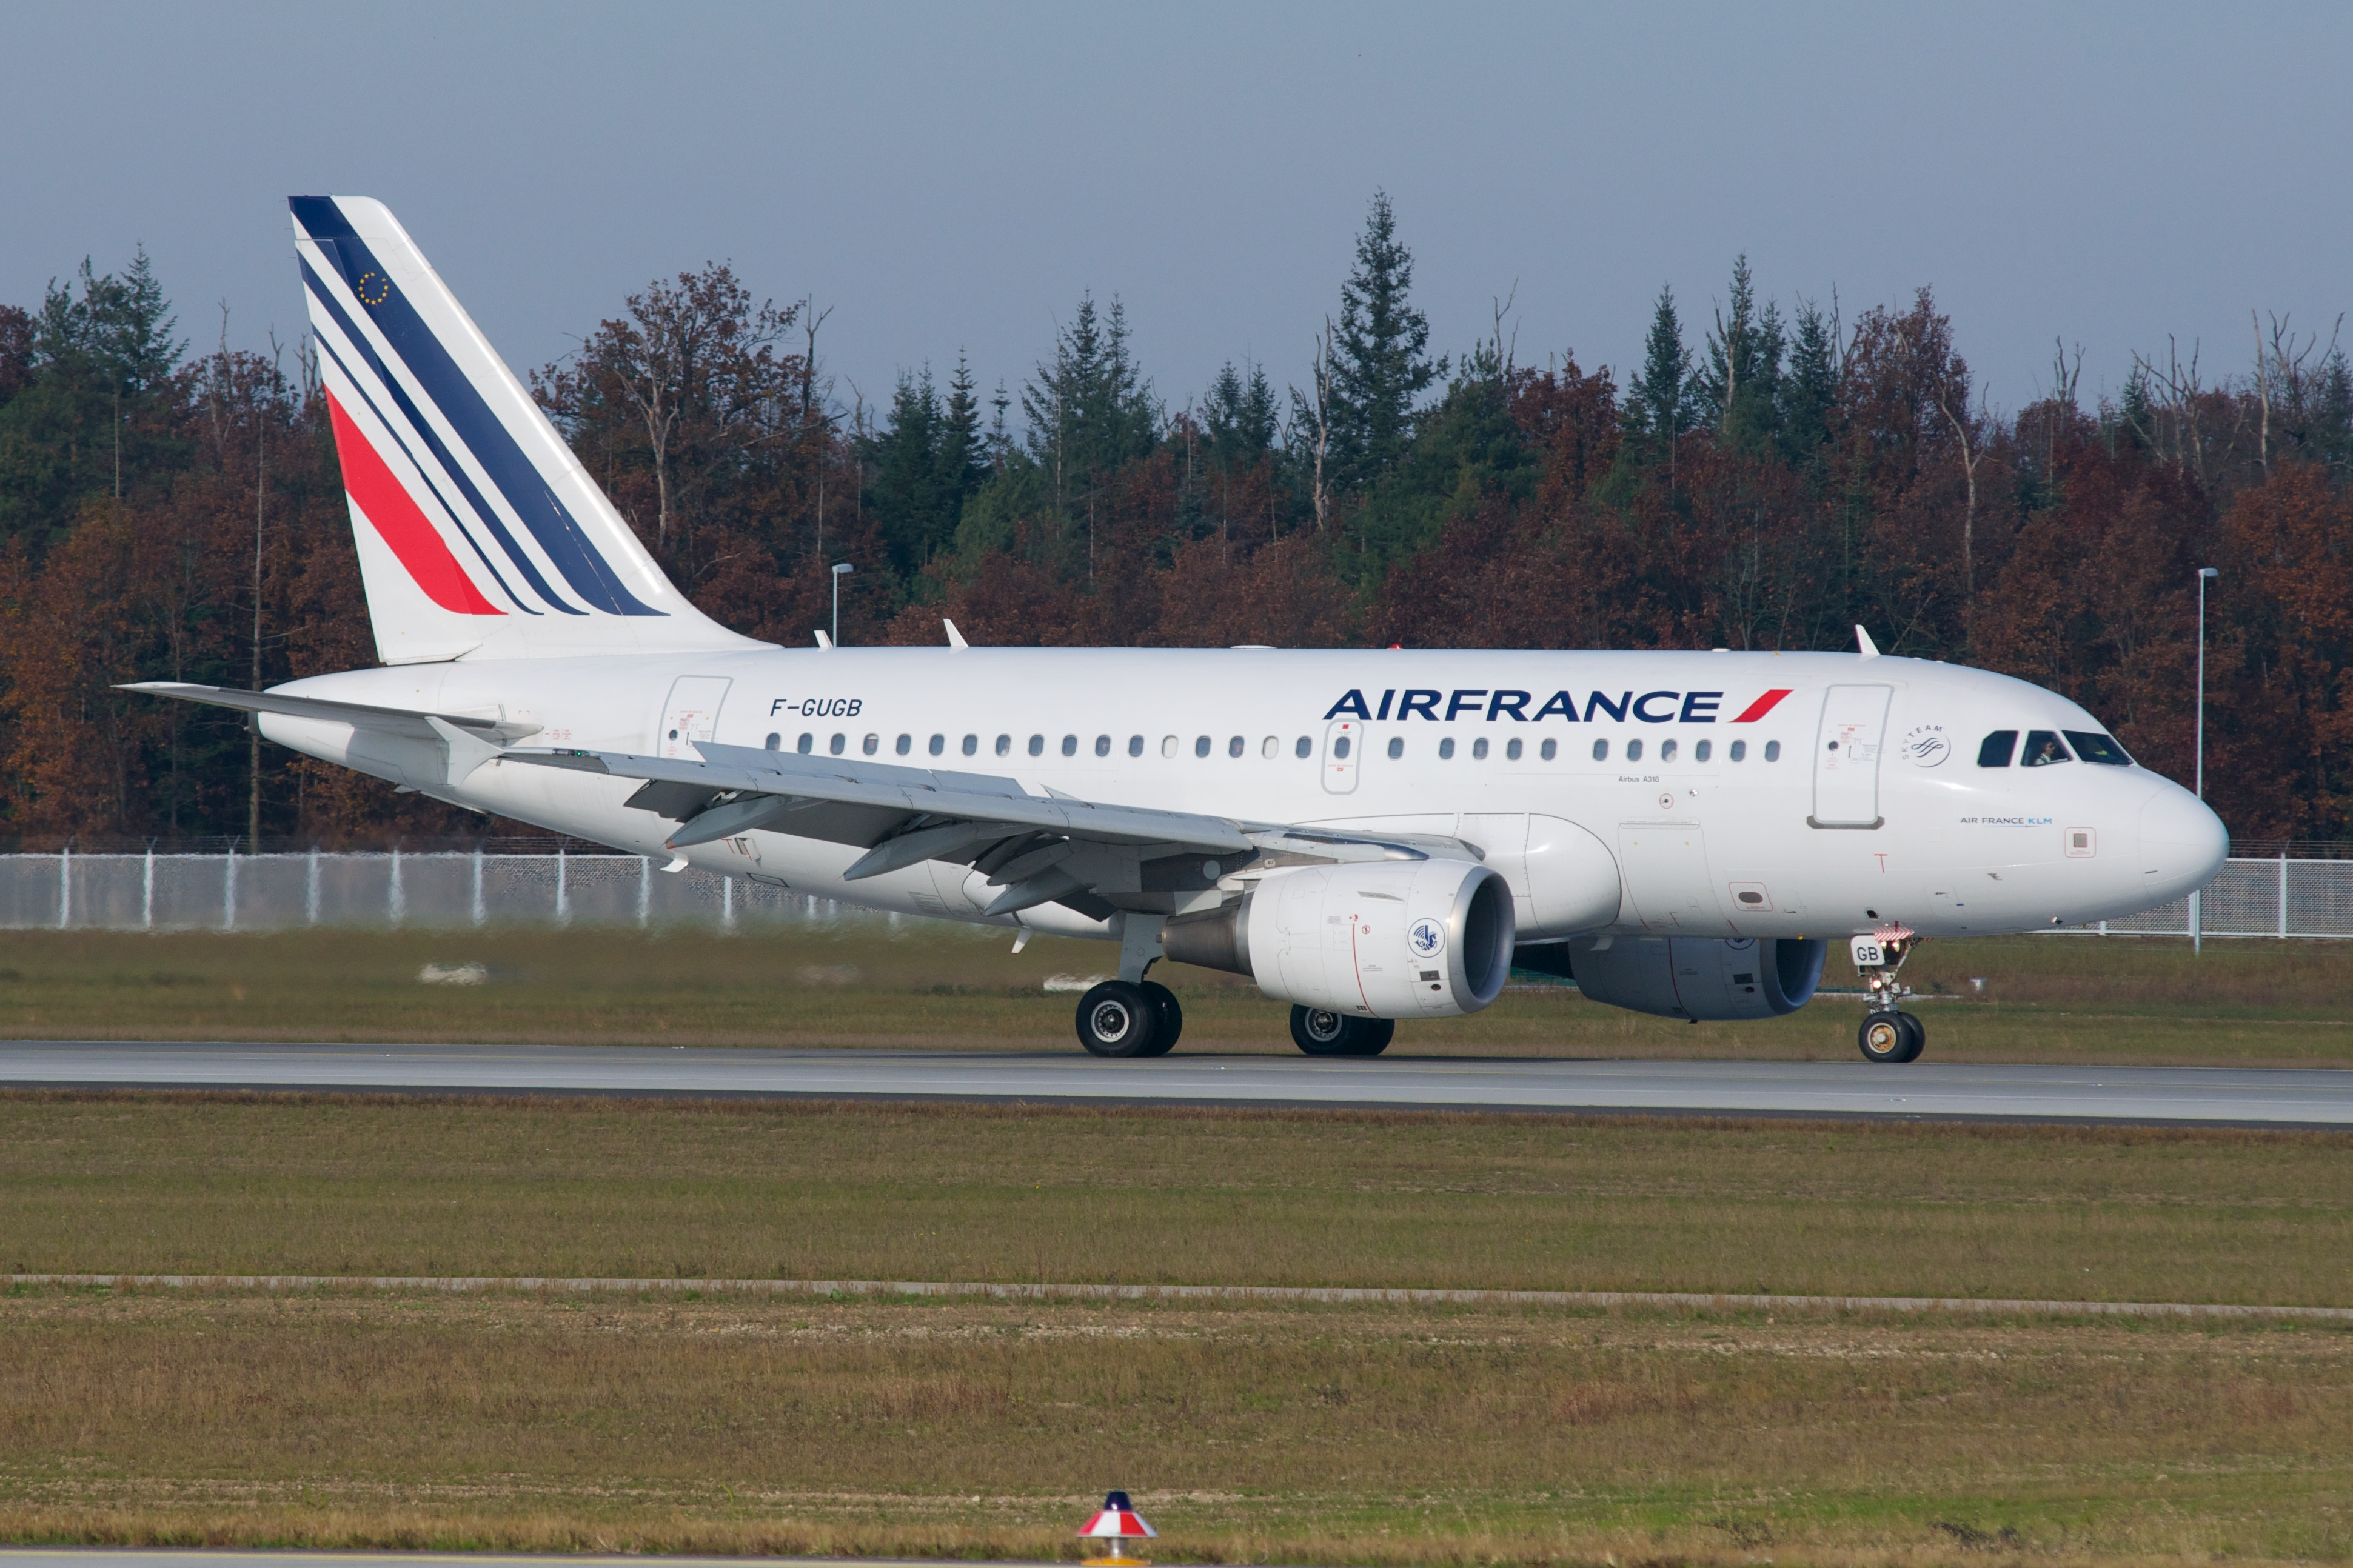 File:Air France Airbus A318 F-GUGB.jpg - Wikimedia Commons